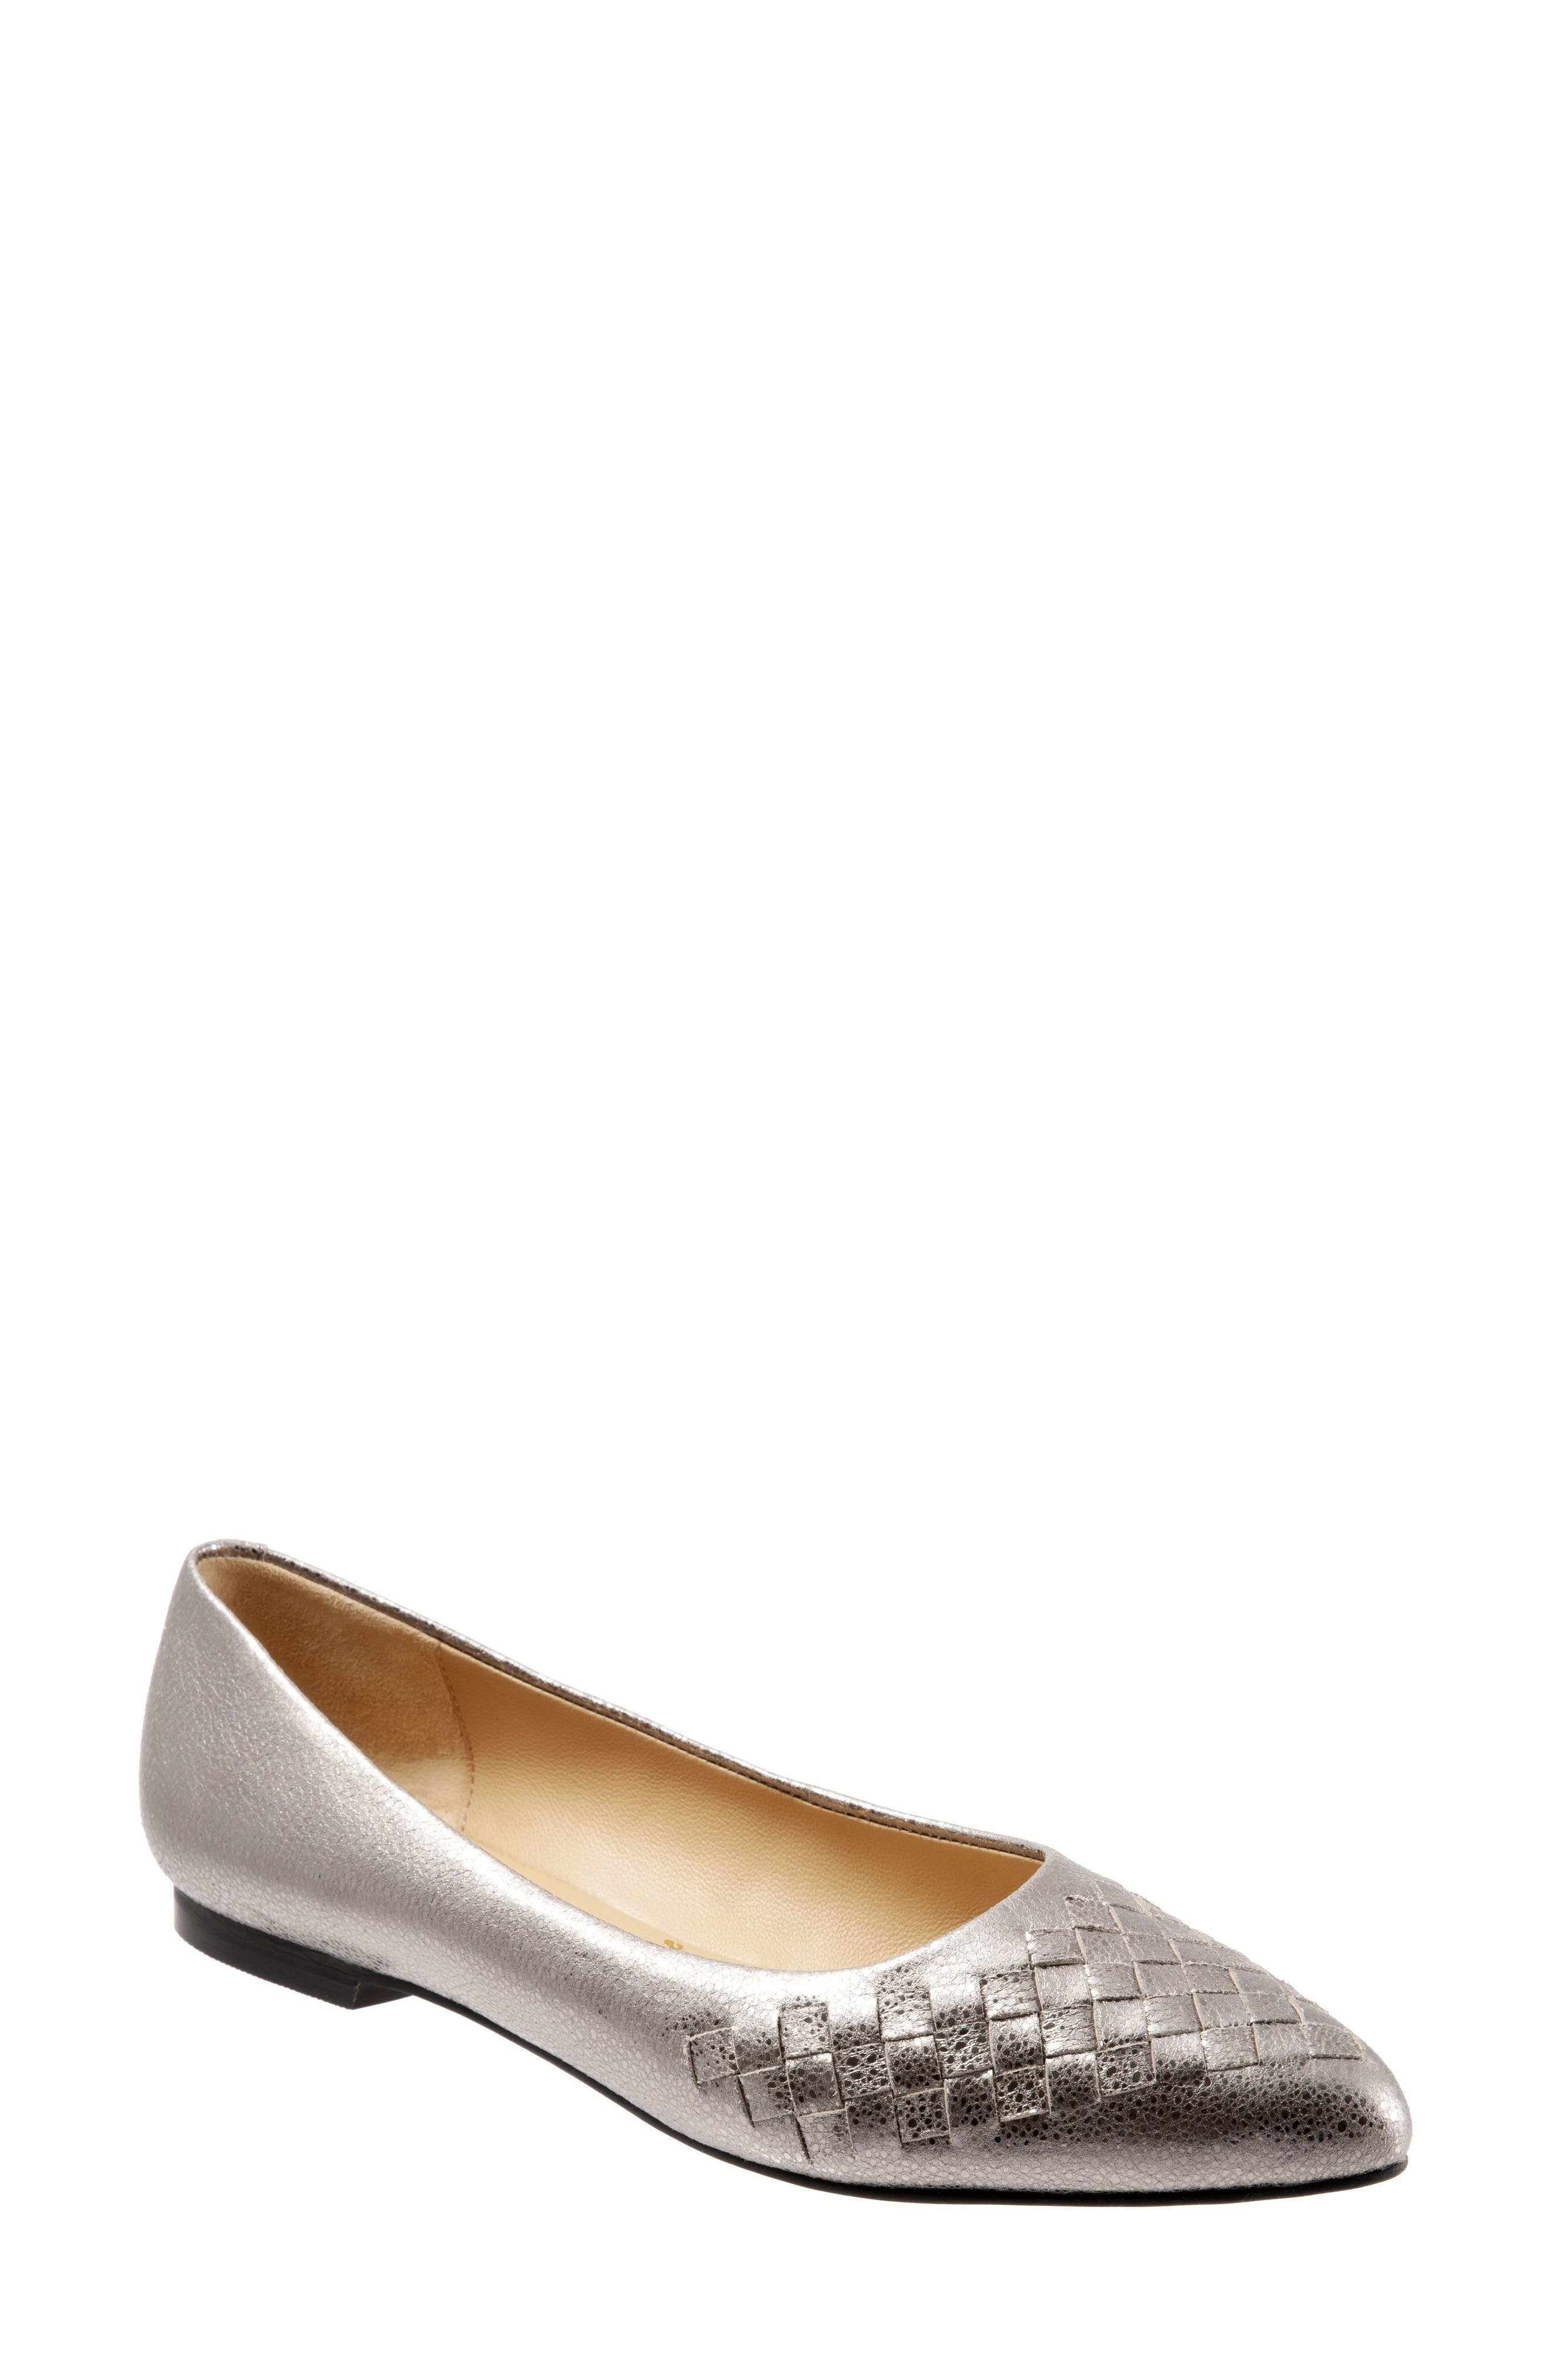 TROTTERS, Estee Pointed Toe Flat, Main thumbnail 1, color, SILVER LEATHER